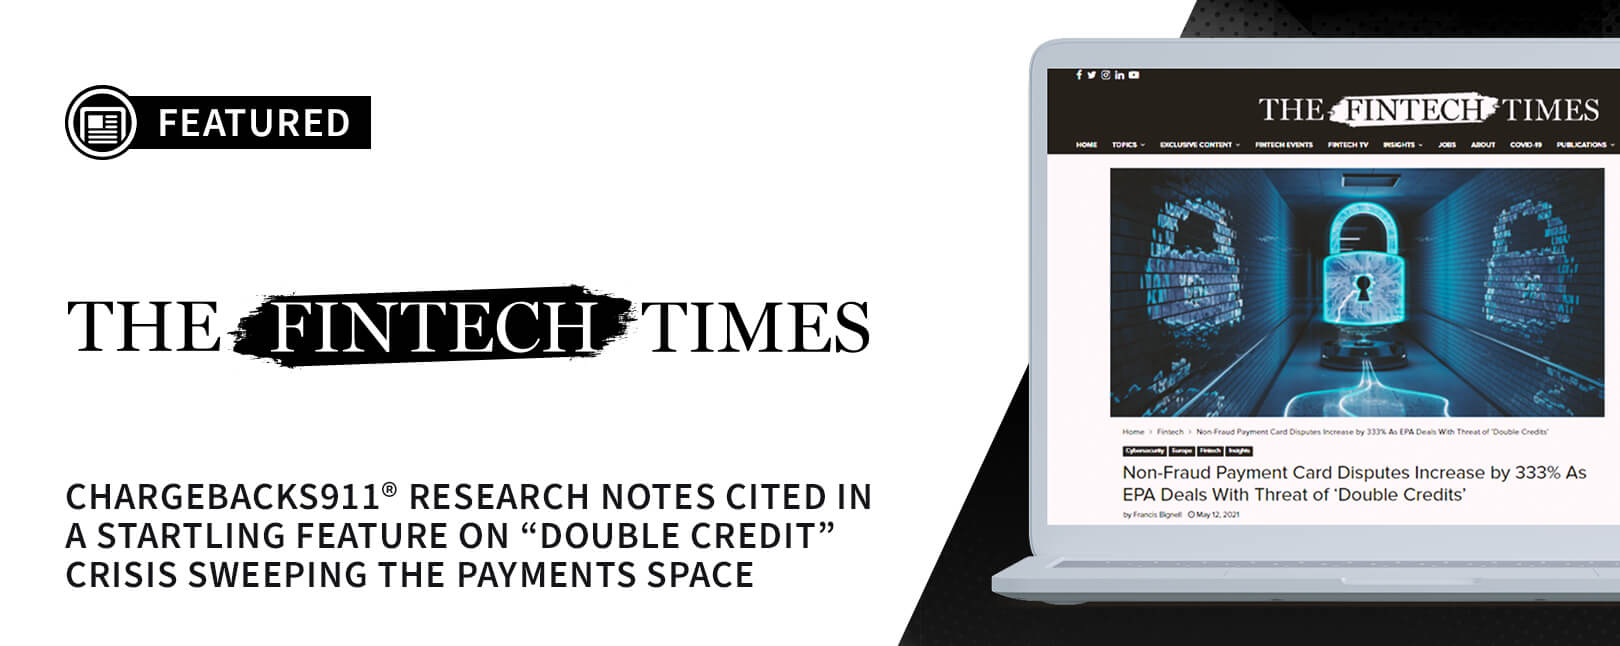 Chargebacks911® Research Featured in Fintech Times